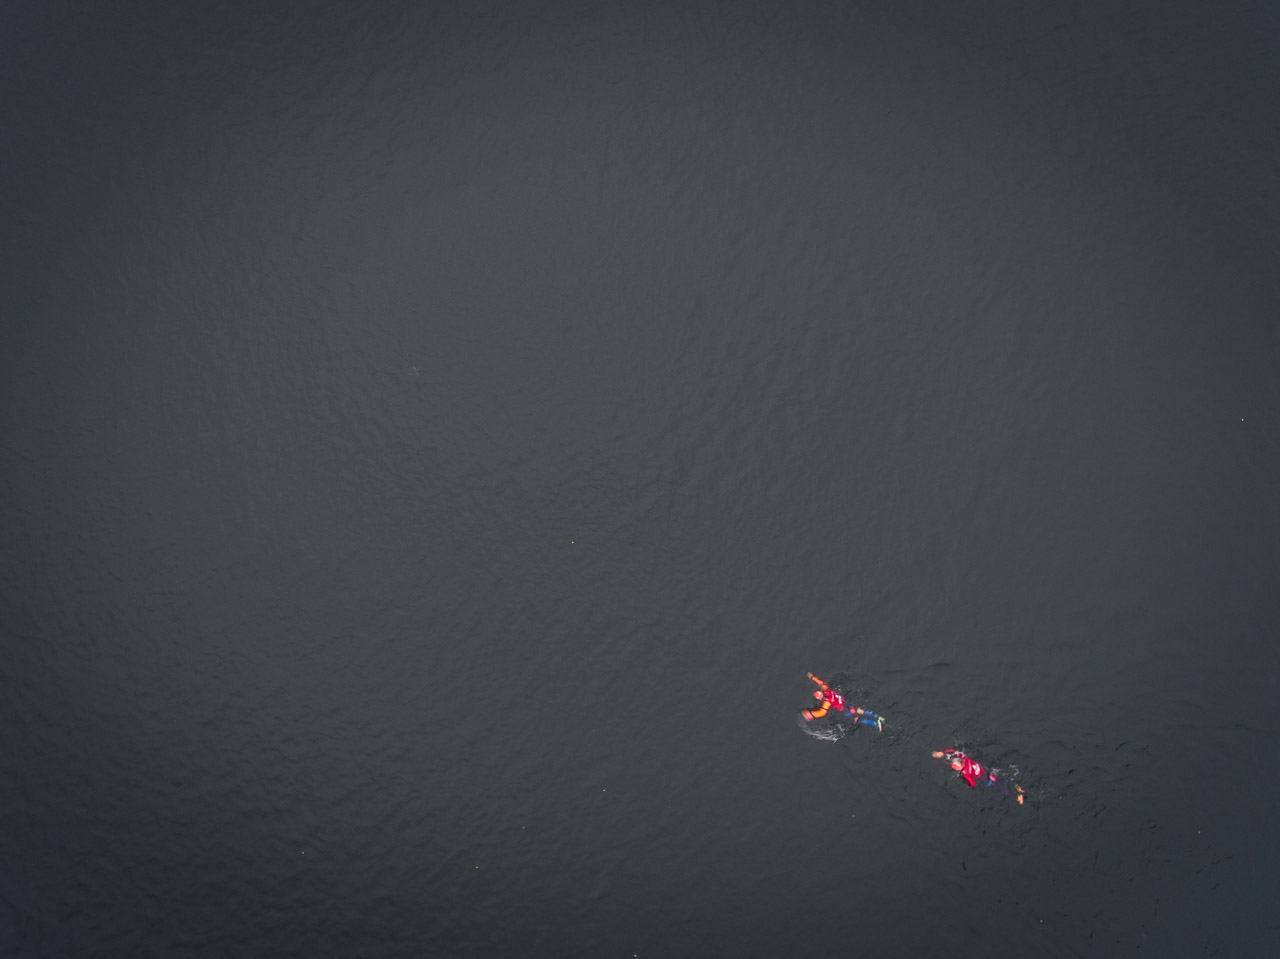 Swimrun drone shot